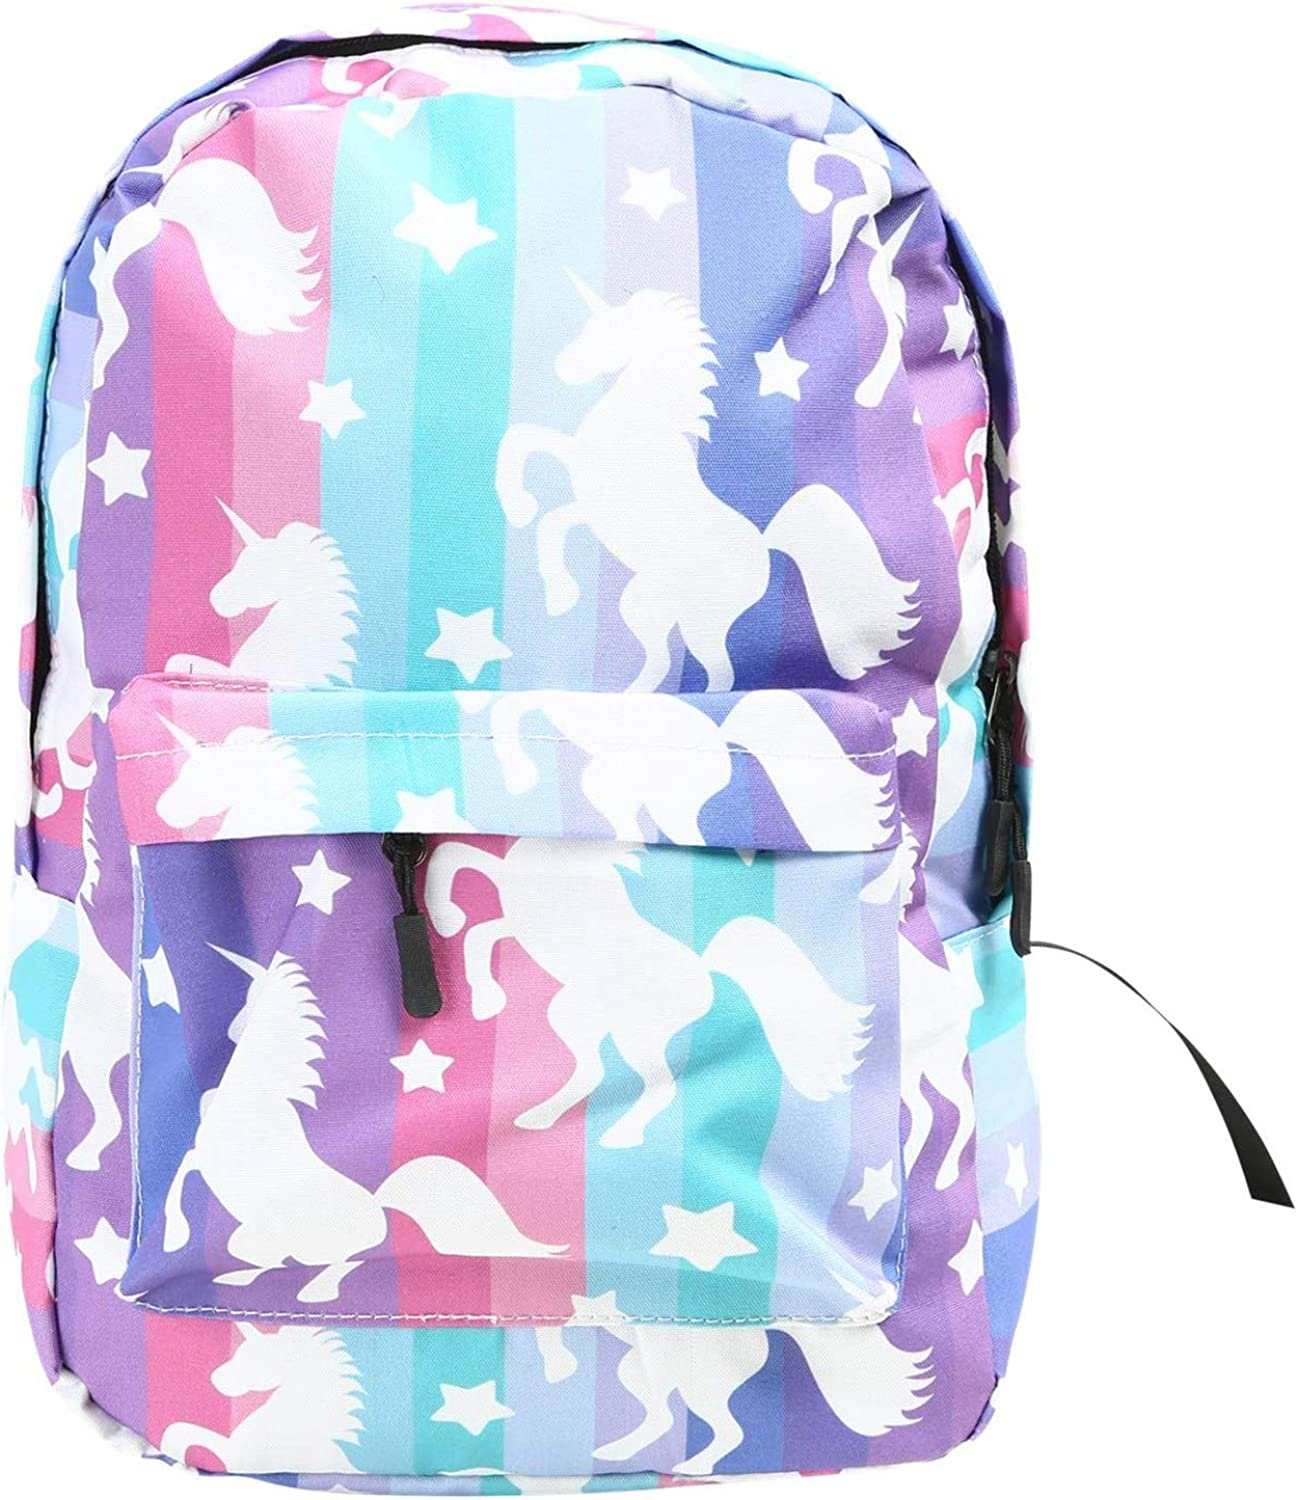 Hometown Of Dreams Girls Winter Dresses Leggings Backpacks and Hats,A110,813Years